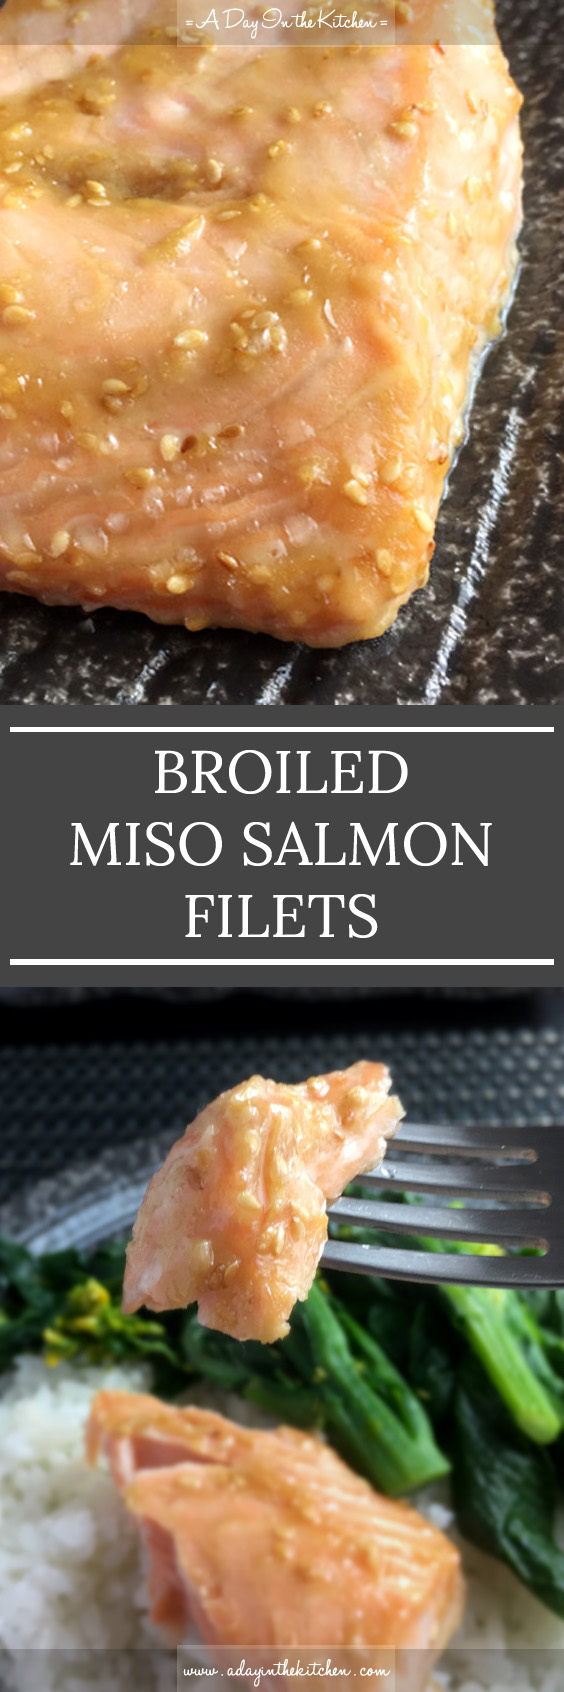 Introduce a taste of Japan to your next fish dish with this tasty Broiled Miso Salmon Filets recipe! Easy to prepare and packed with flavor! #glutenfree #salmon #misosalmon